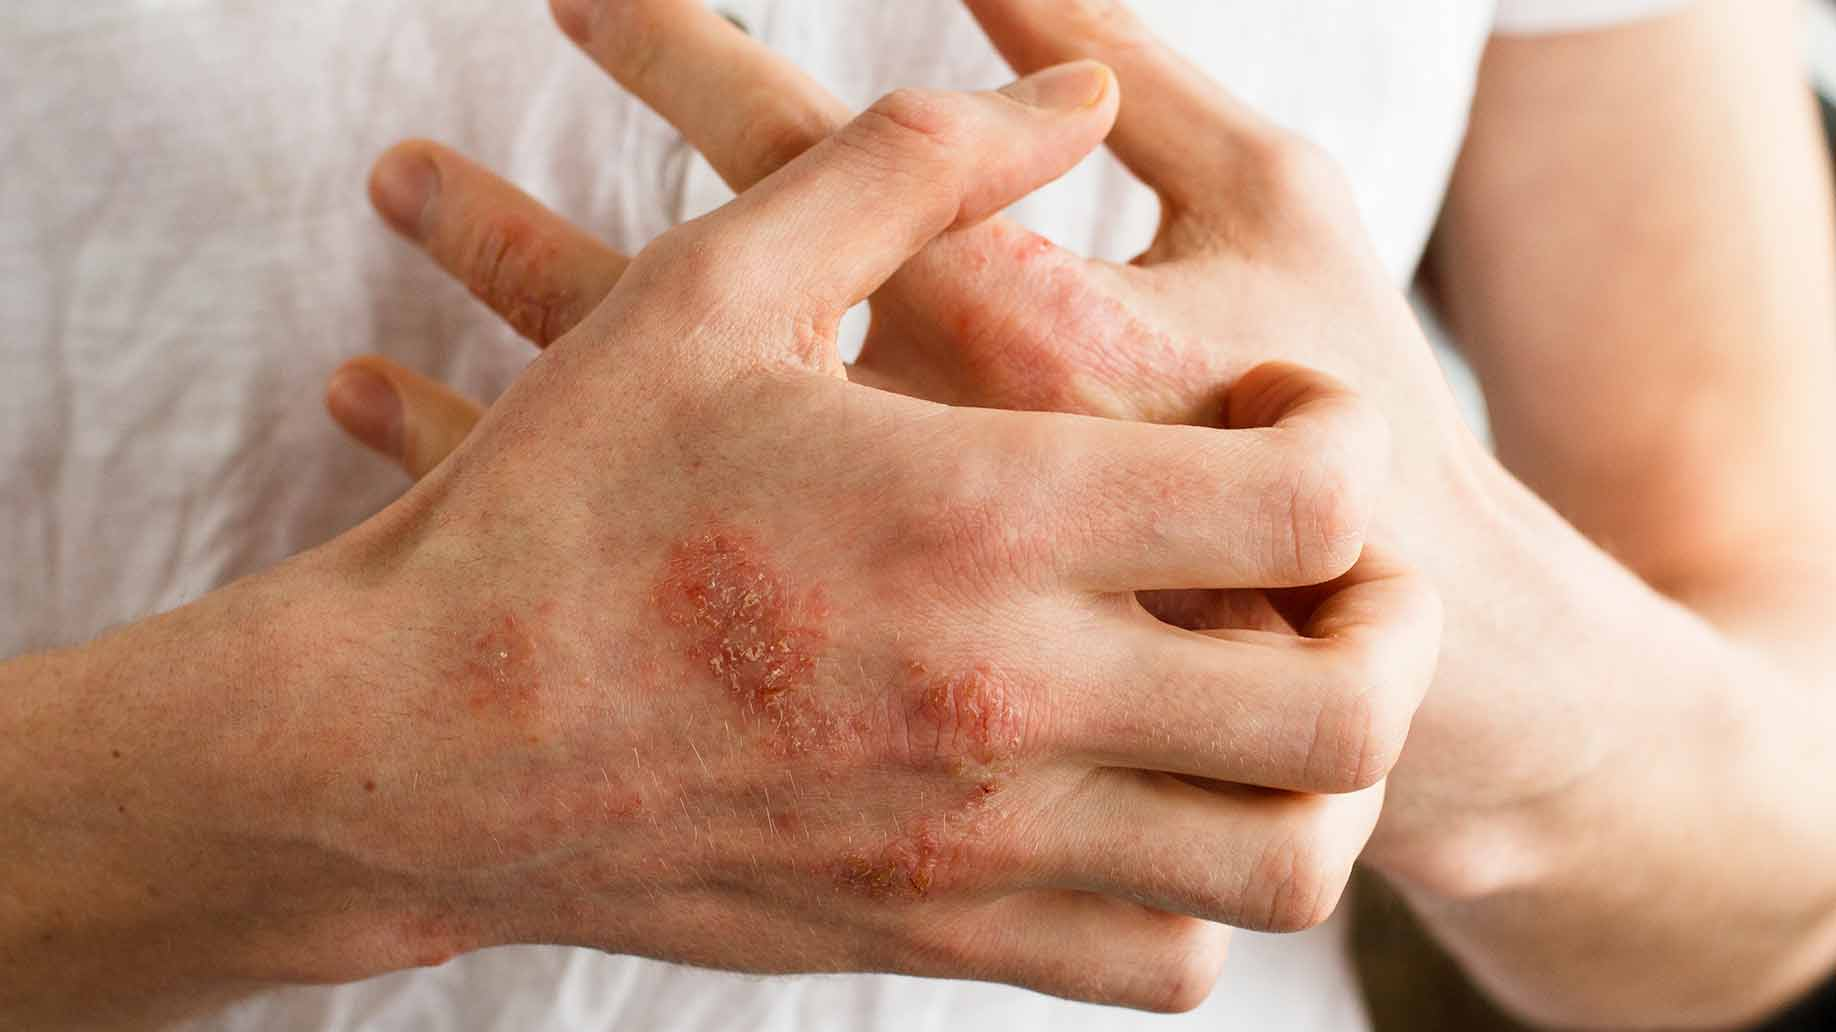 psoriasis patches